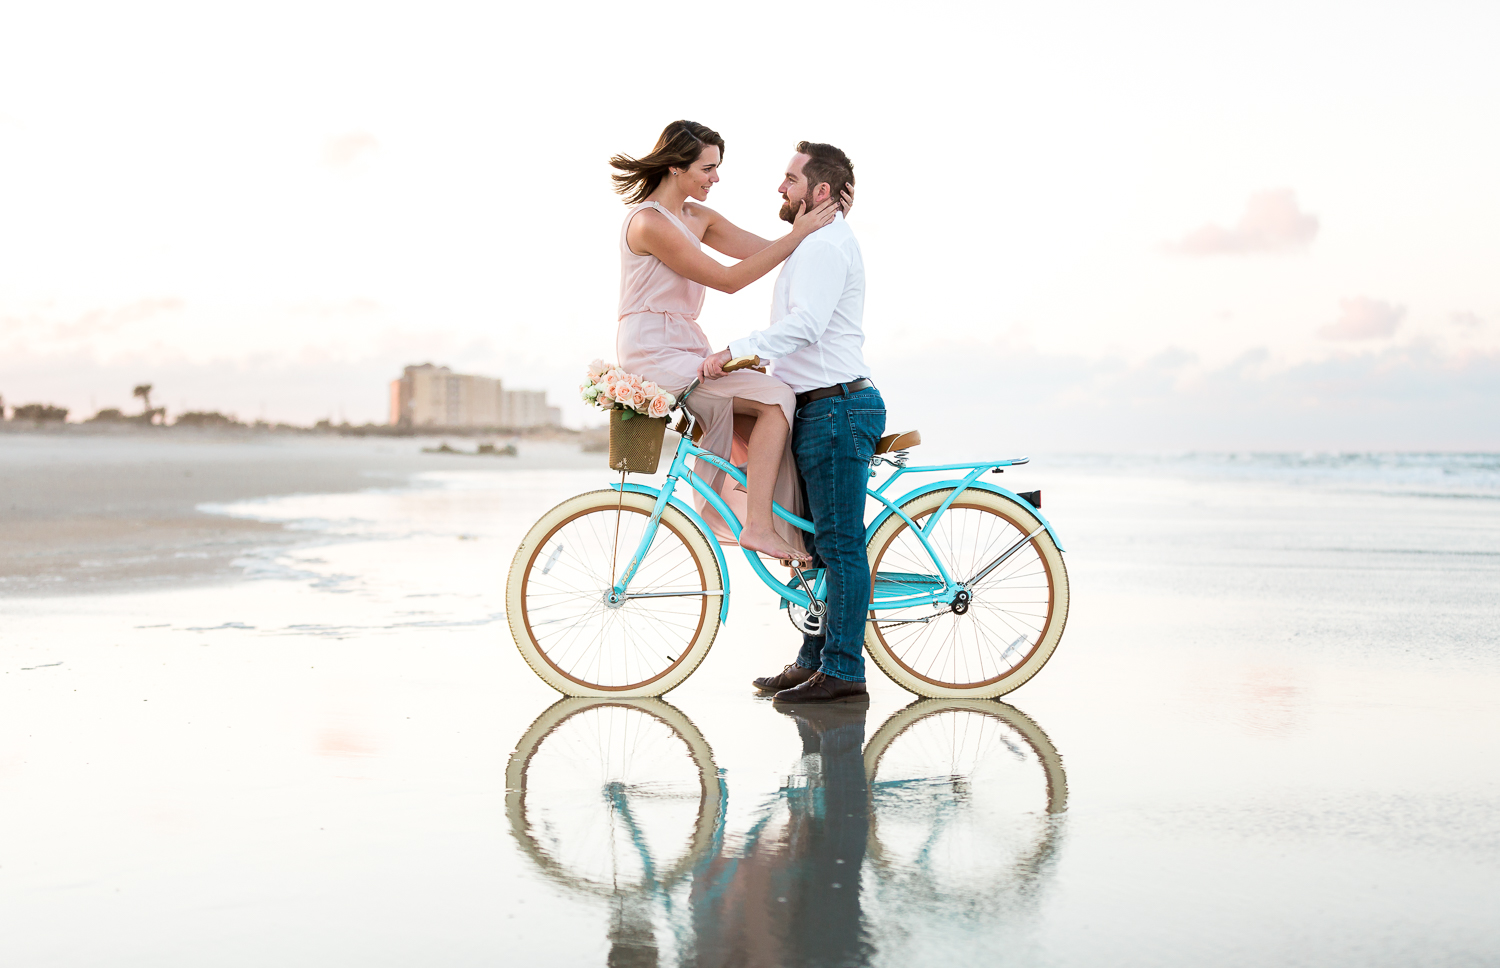 sunsete couple engagement picture ideas with a beach cruiser + posing ideas